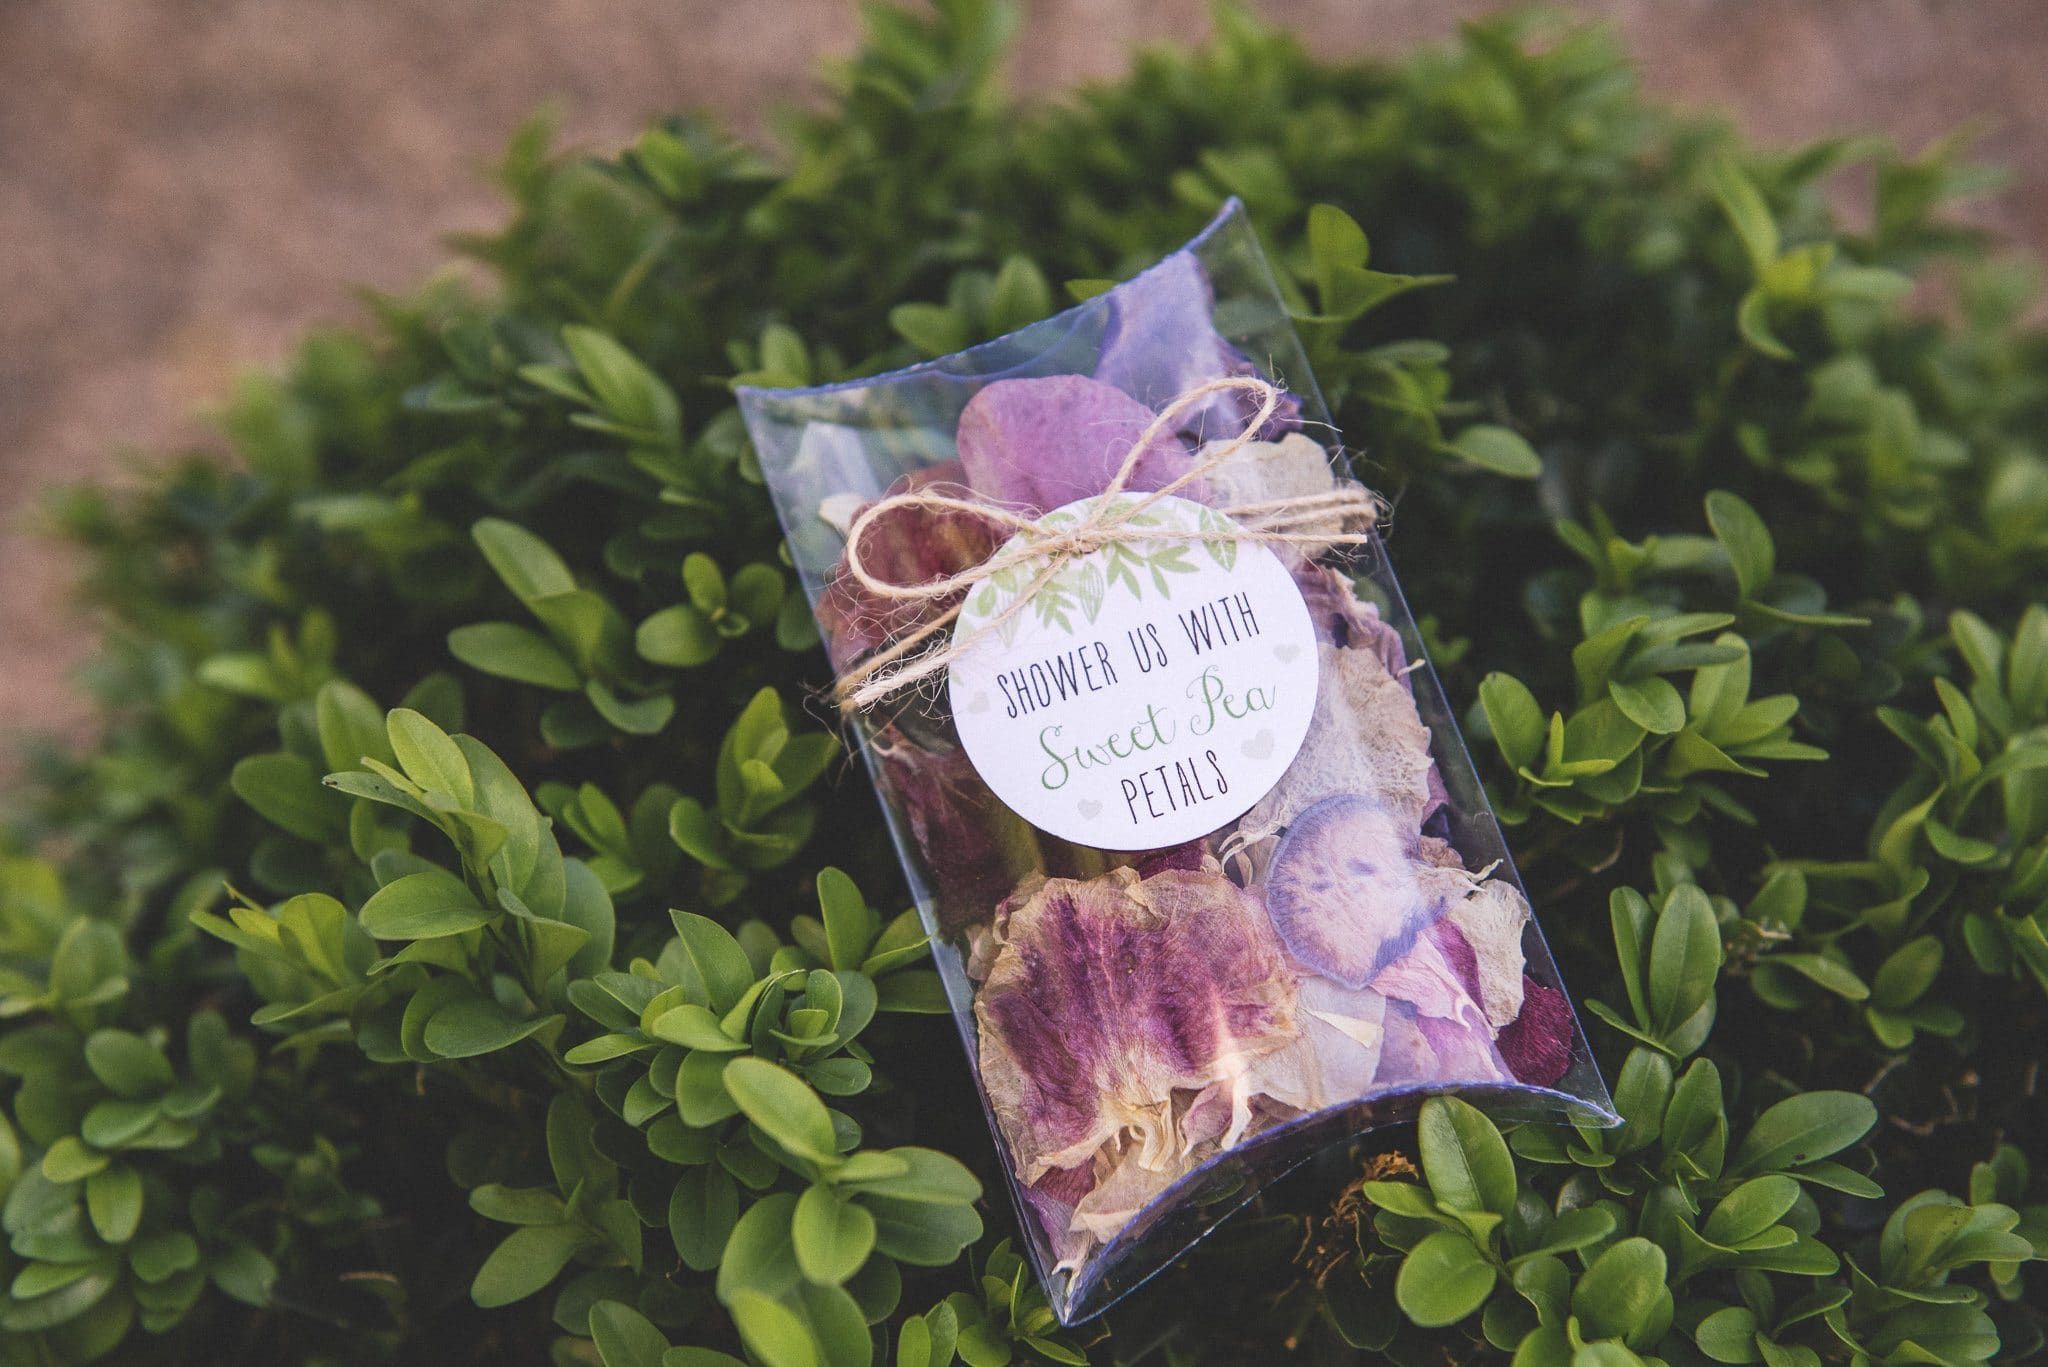 Close up of the confetti - little packages of sweet pea petals